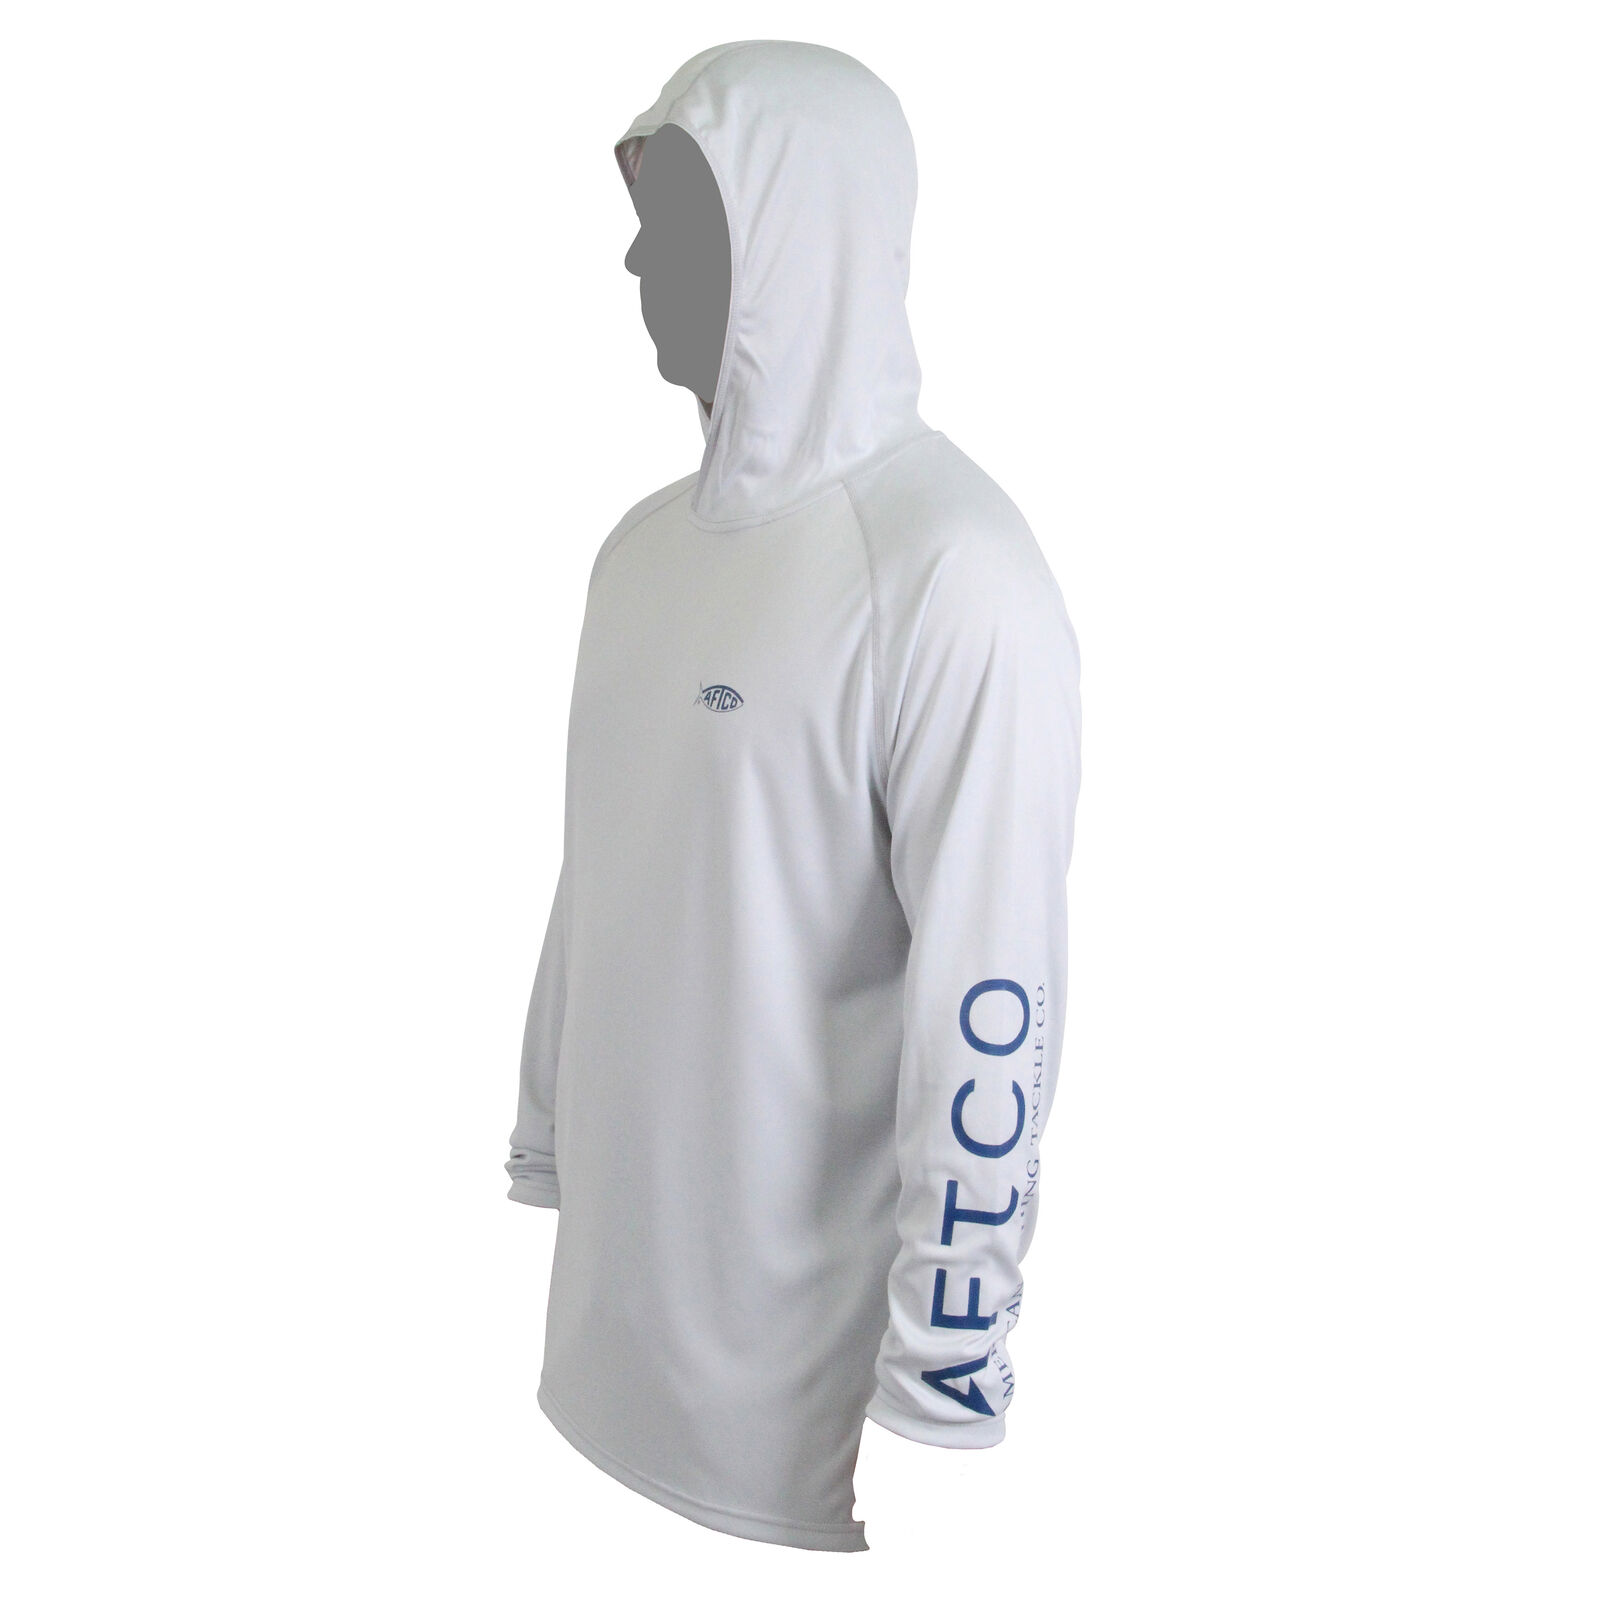 AFTCO Samurai  Hooded Shirt, White, Large  online sales